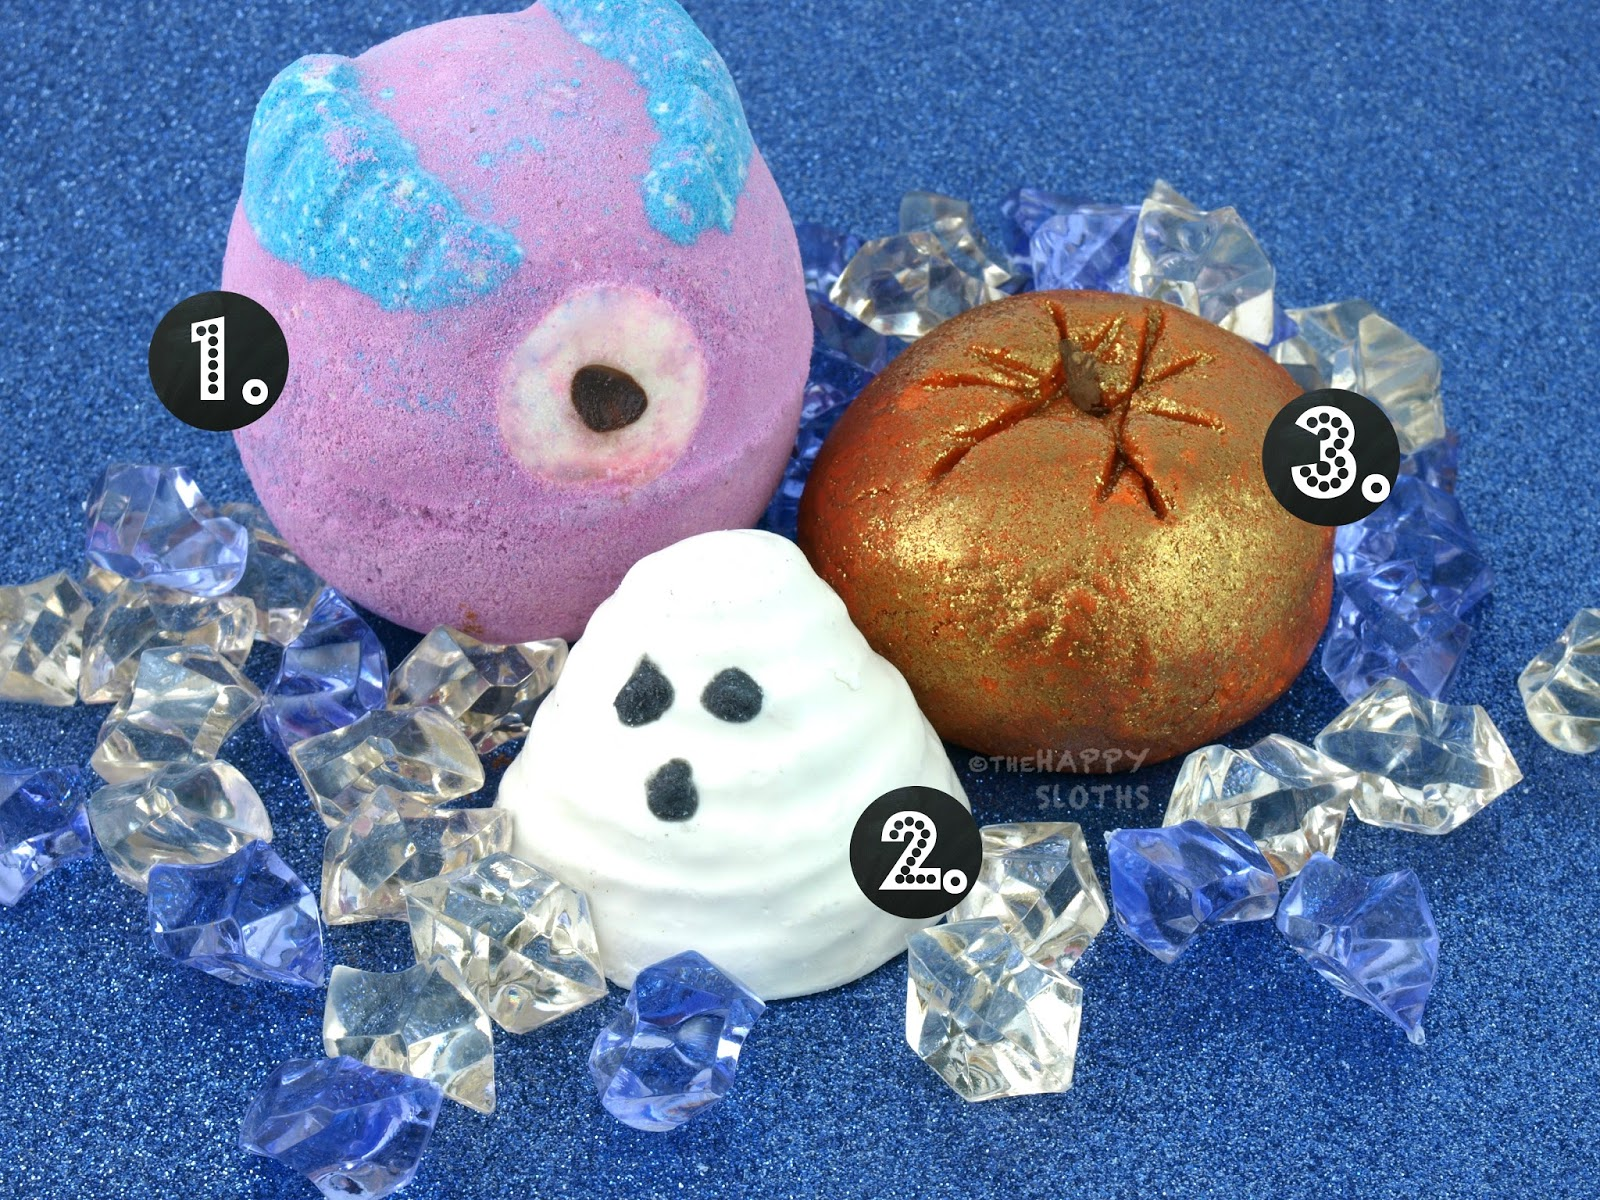 Lush Halloween Monsters Ball Sparkly Pumpkin Boo